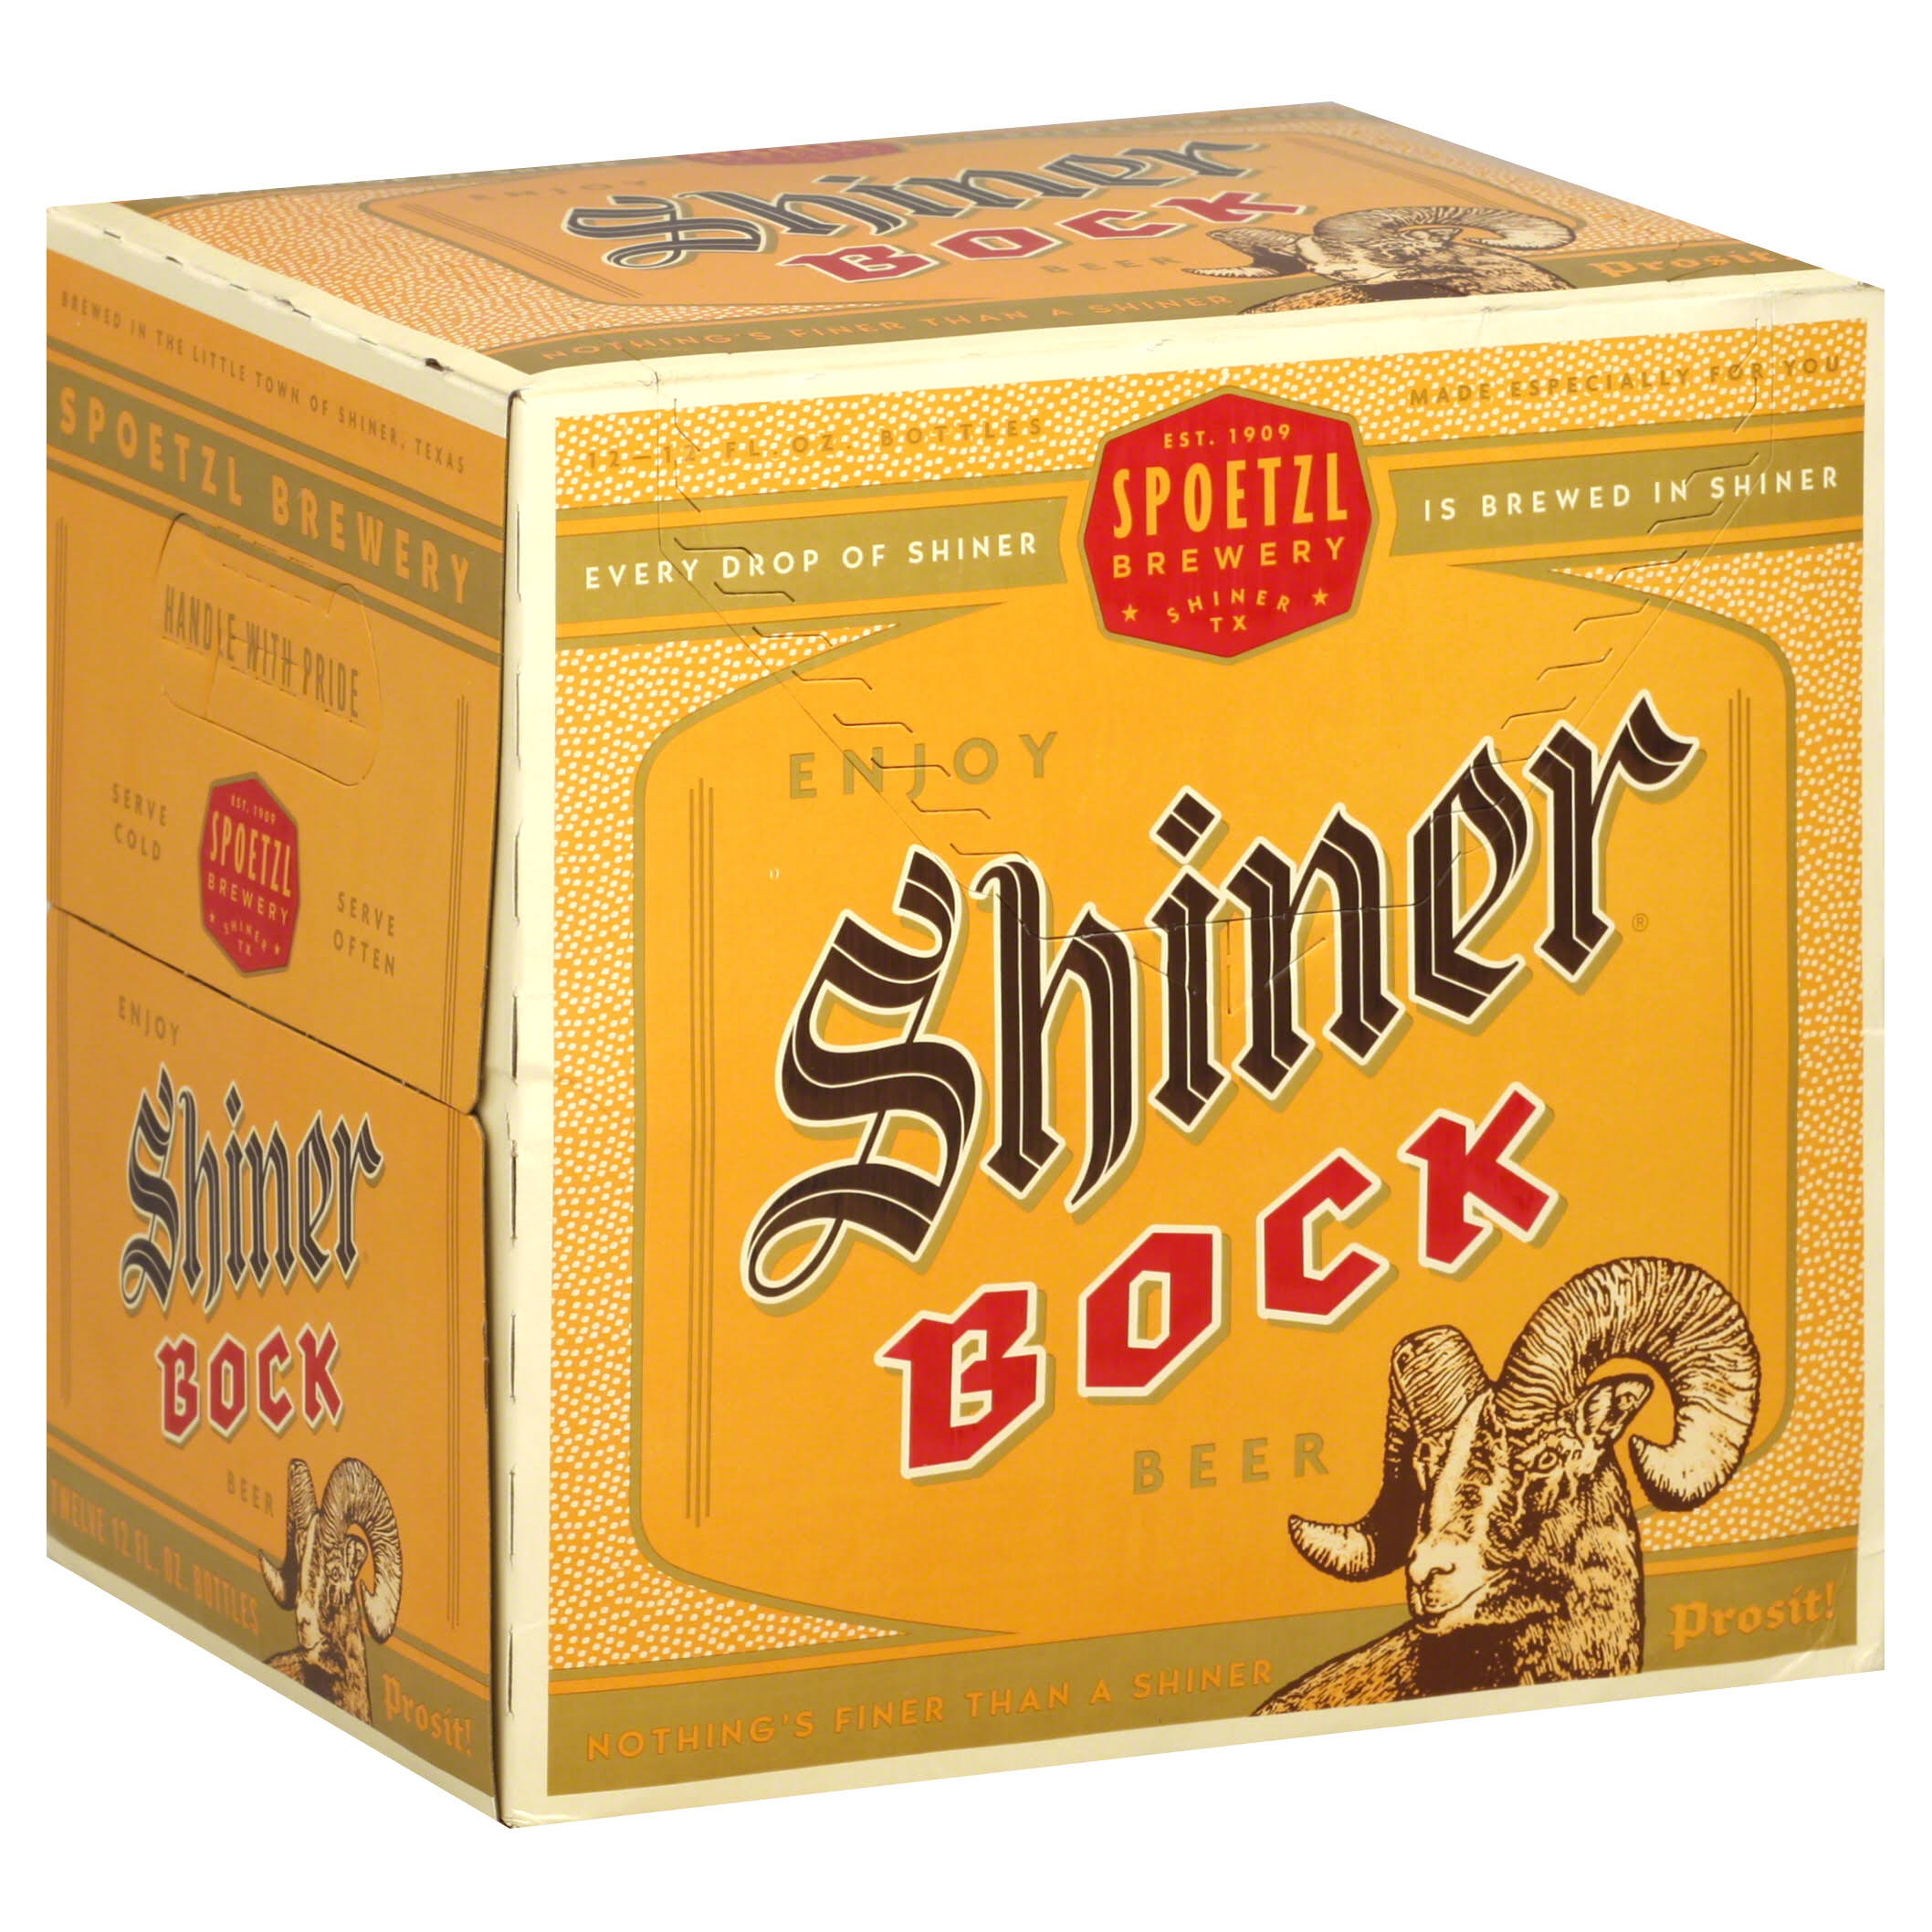 Spoetzl Shiner Bock Beer - 12oz, 12pk